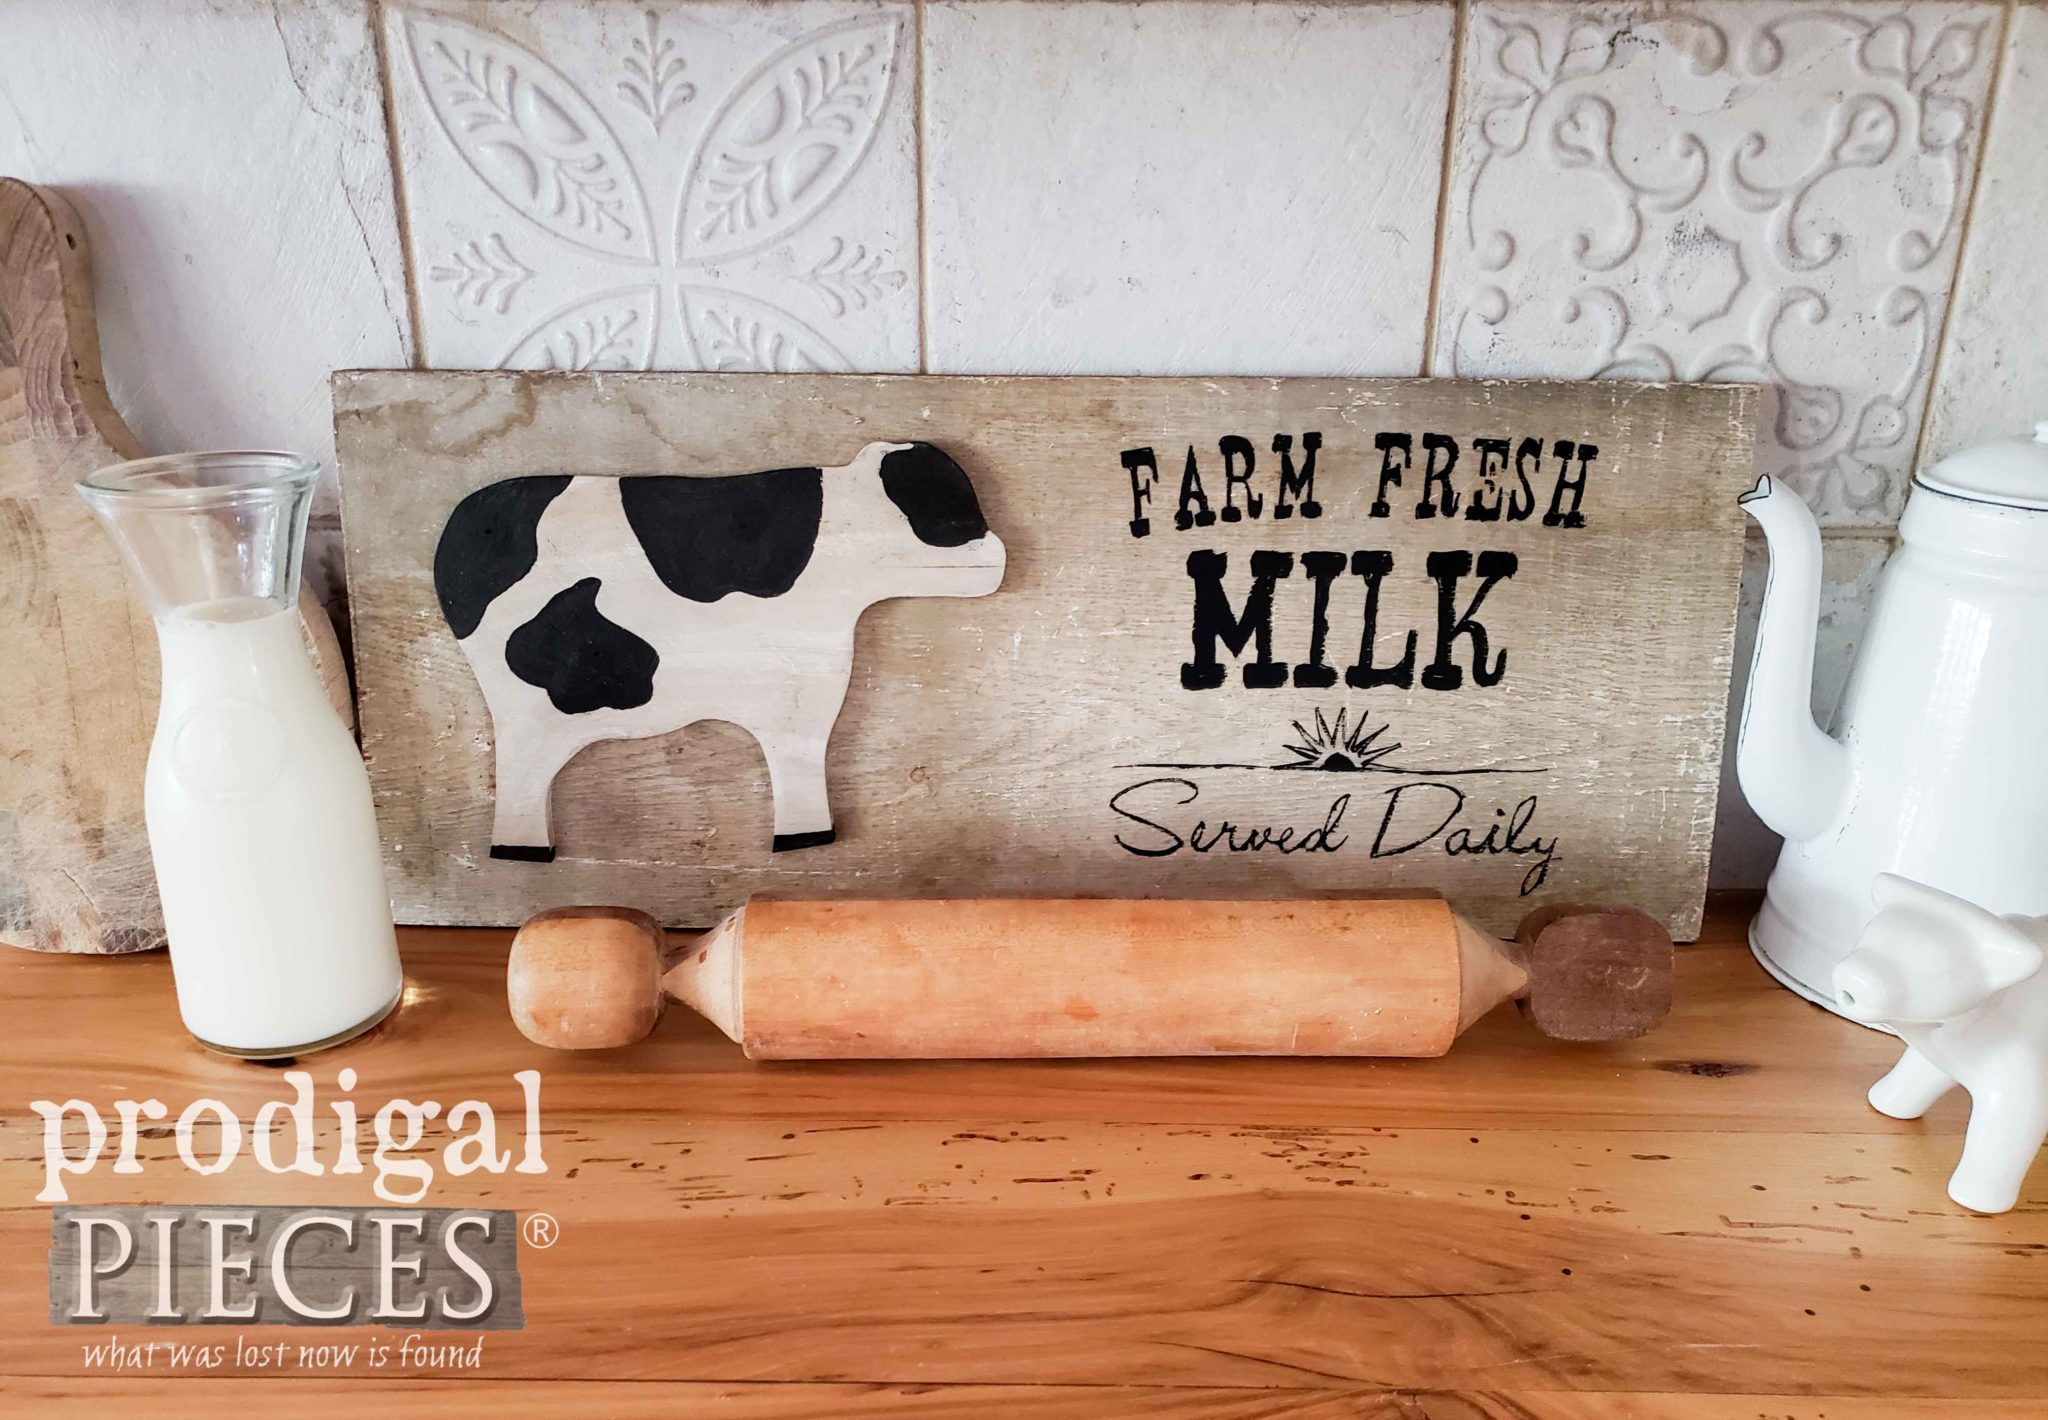 Reclaimed Wood Farm Fresh Milk Sign by Larissa of Prodigal Pieces using Repurposed Cutting Boards | prodigalpieces.com